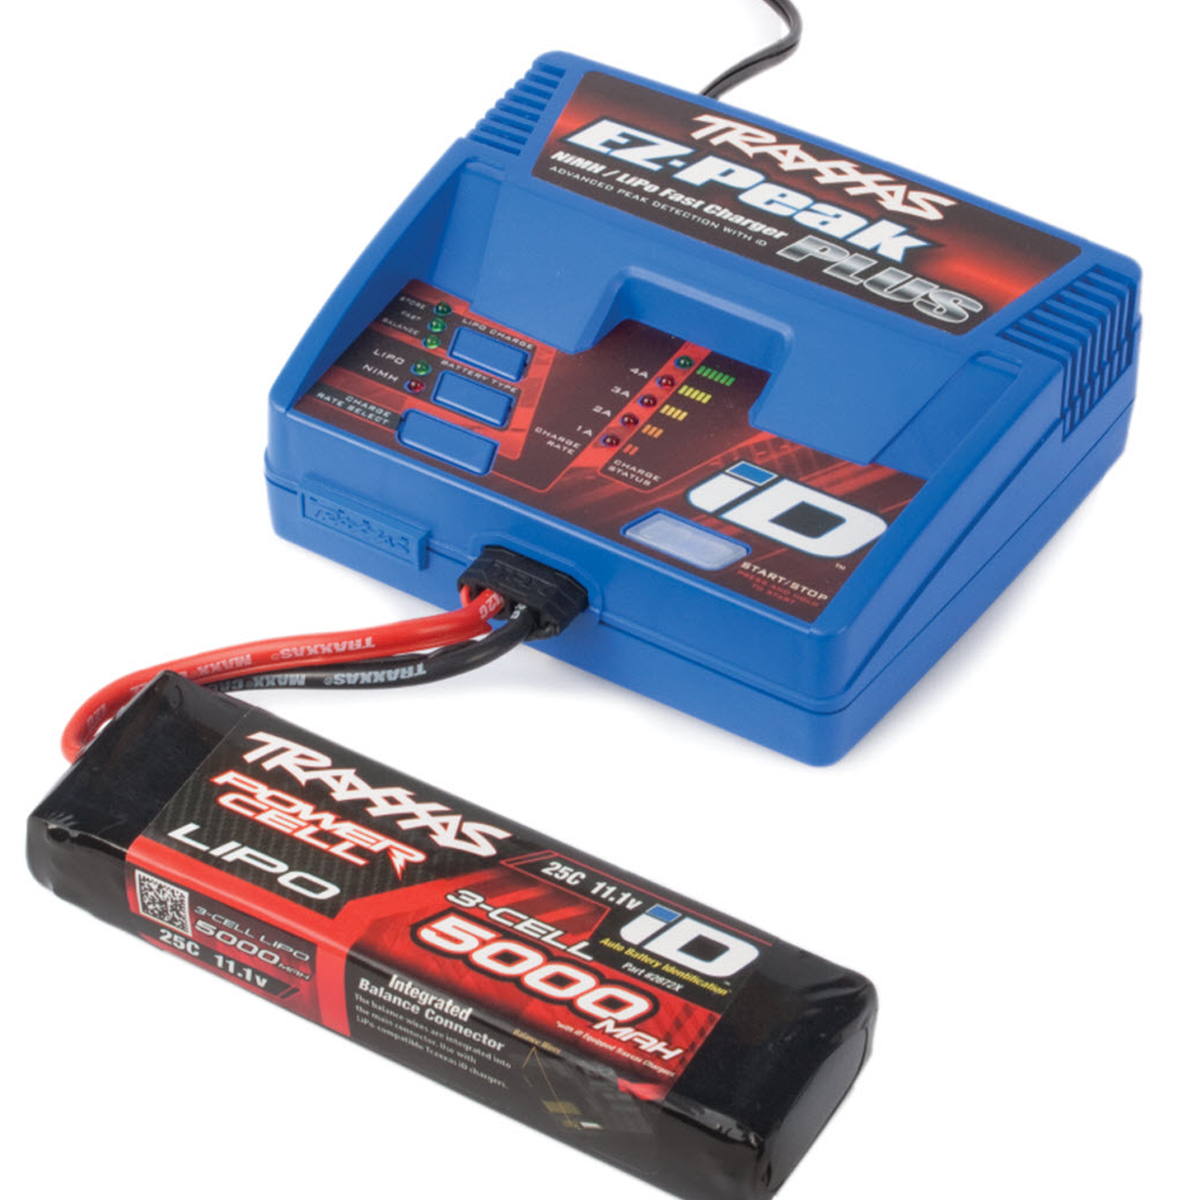 Traxxas EZ-Peak Plus 4amp iD Charger [REVIEW]